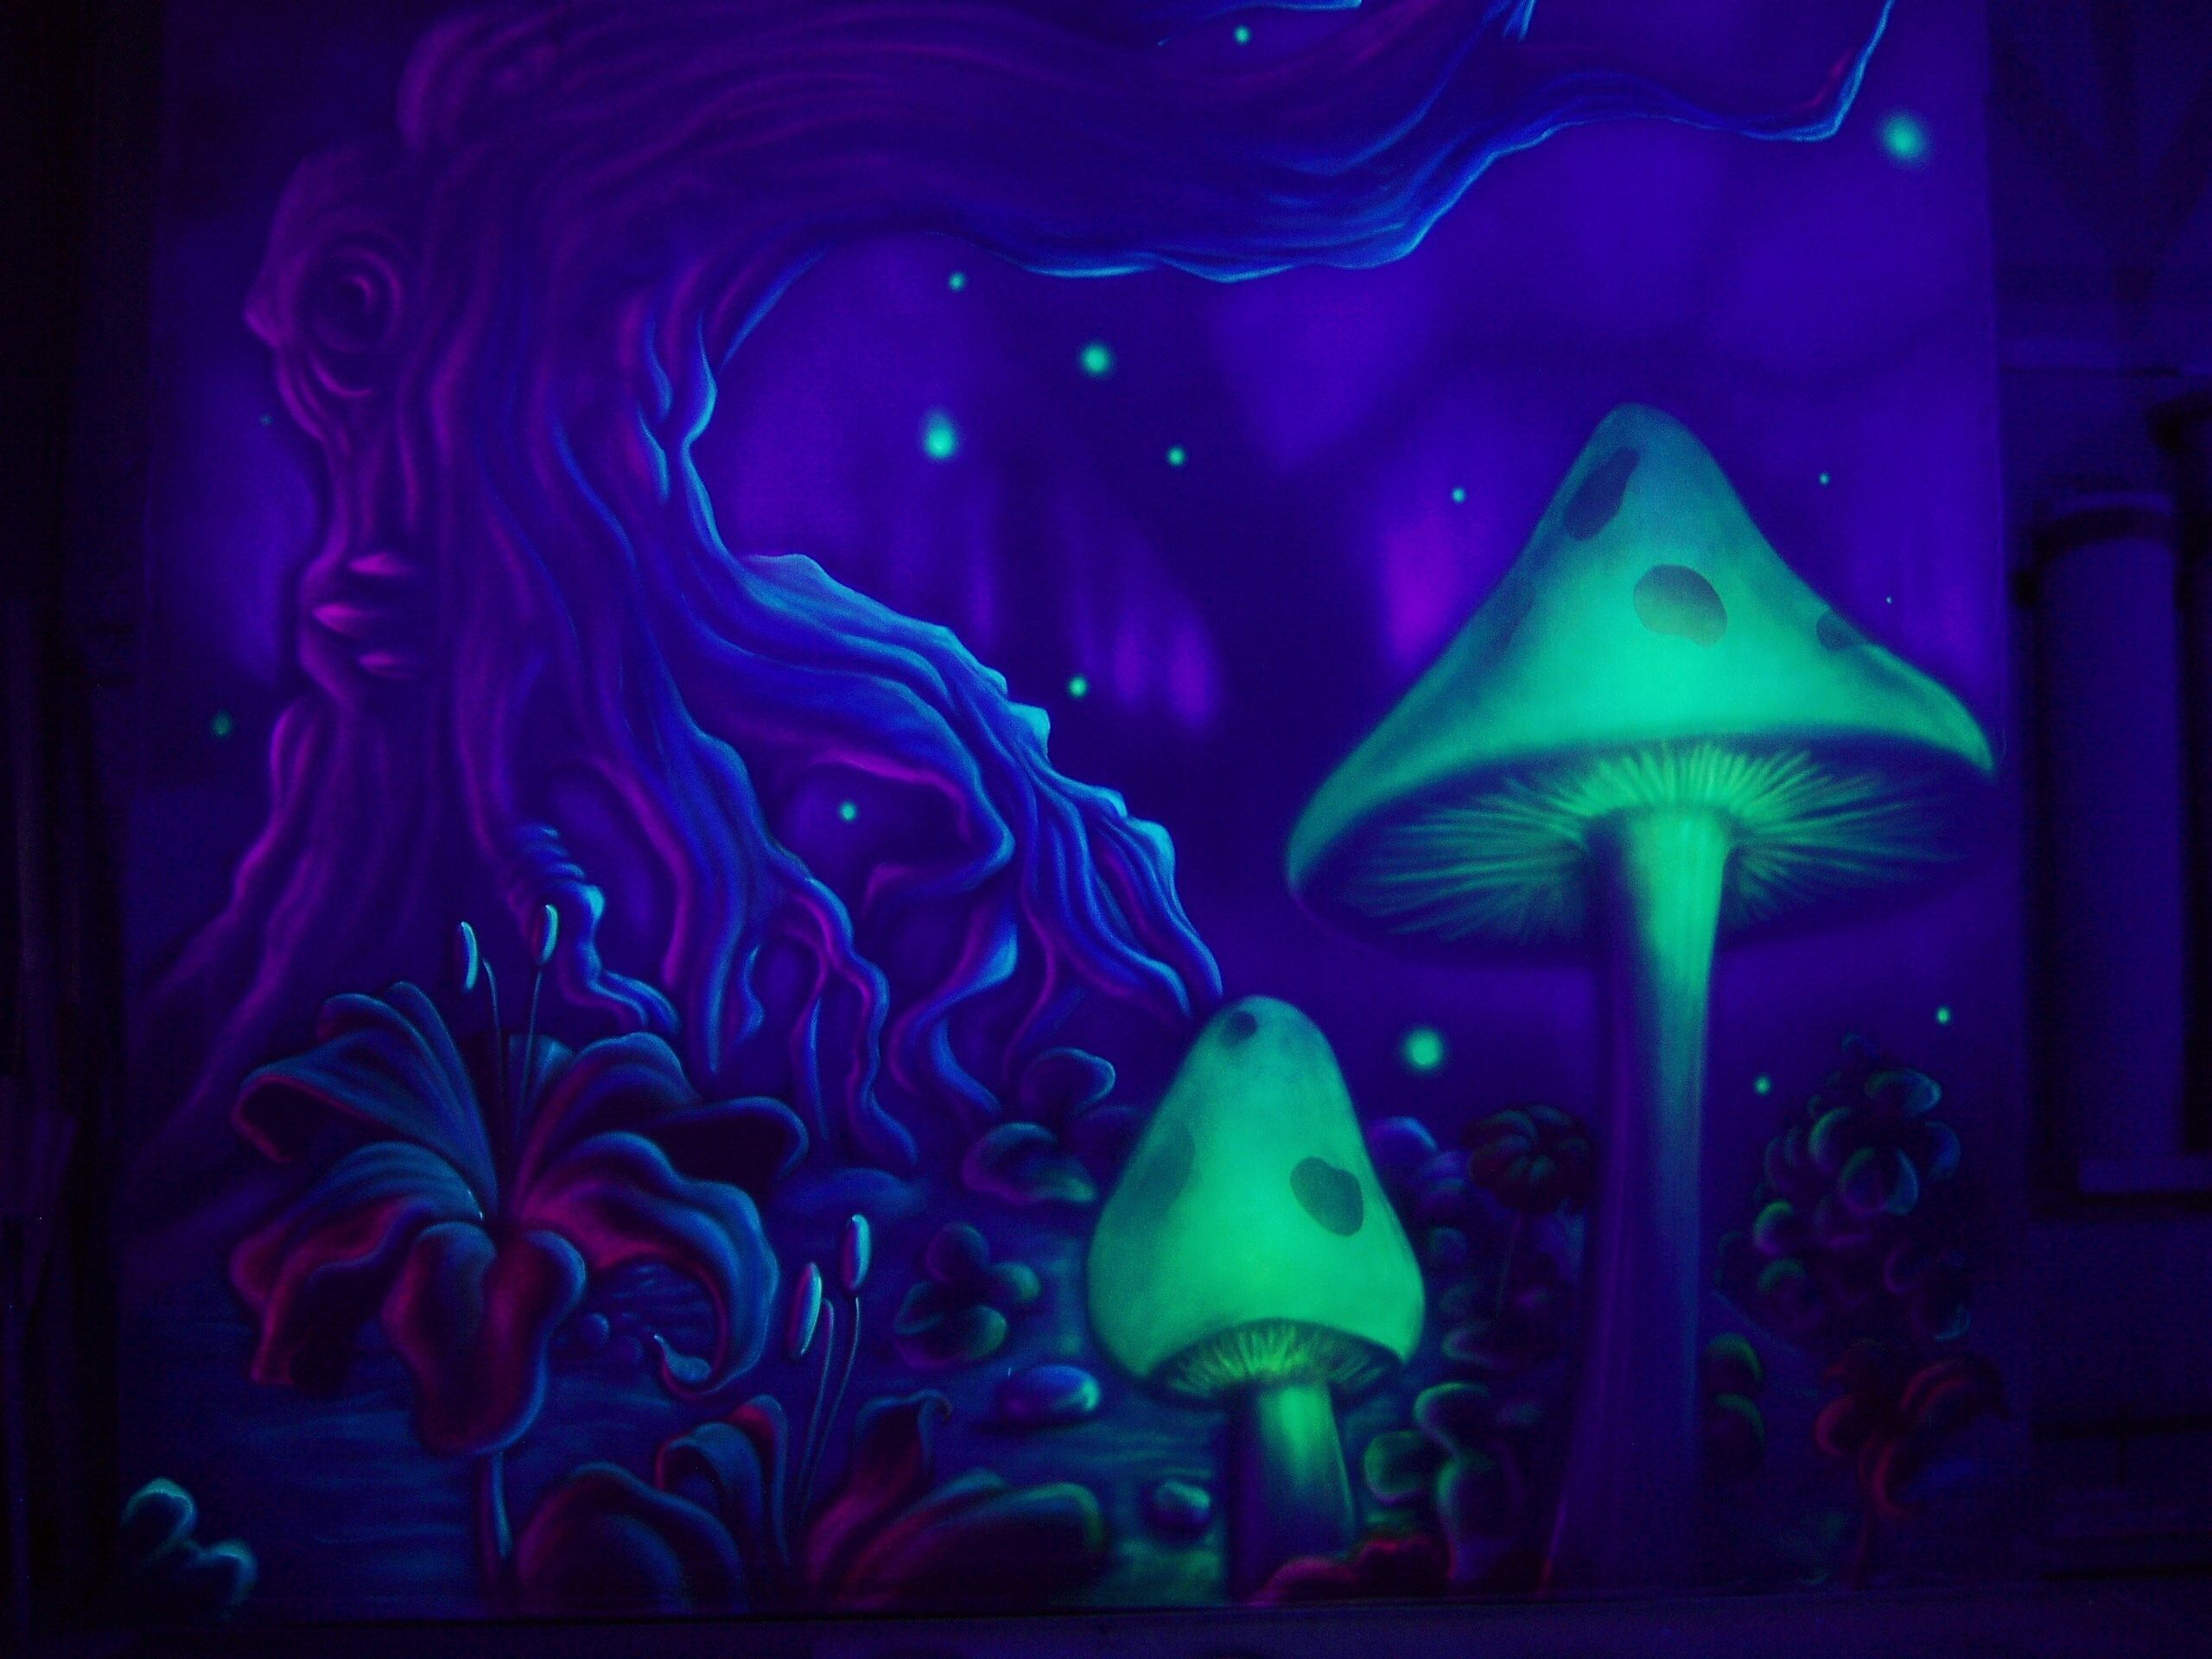 trippy mushroom wallpaper charcoal and pastel sketches